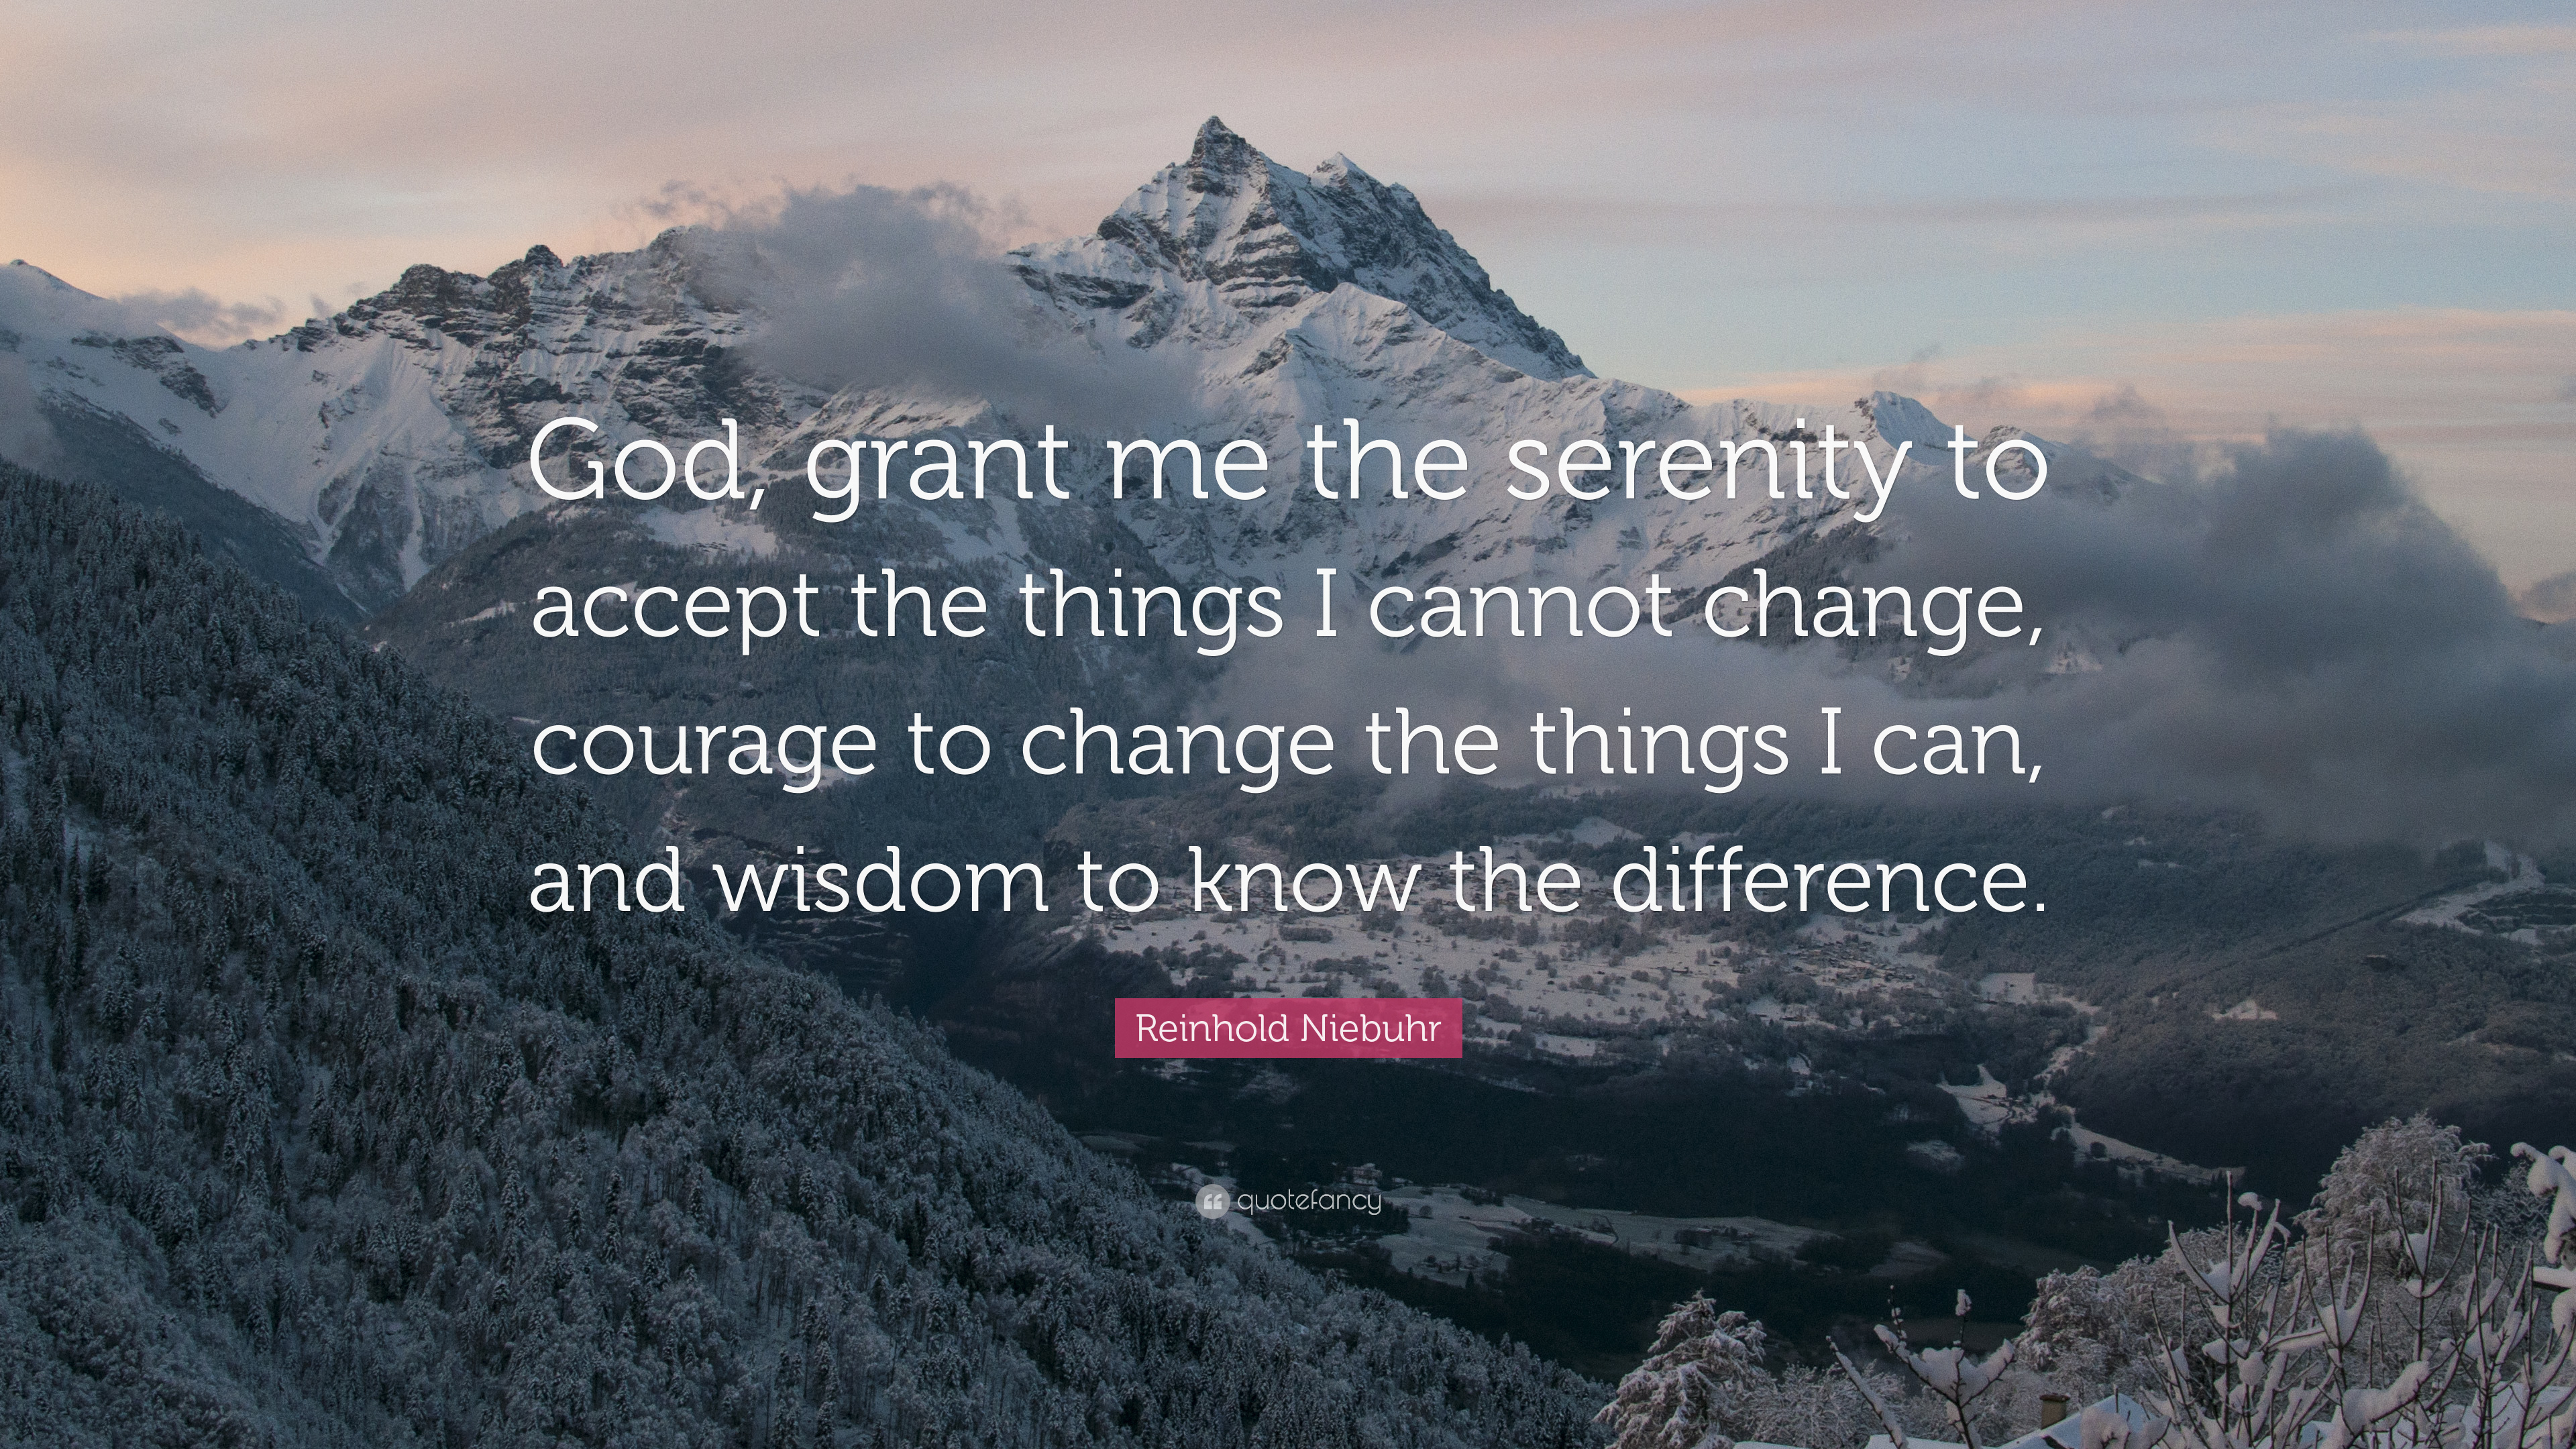 Serenity Prayer Quote God Grant Me The Serenity To Accept The